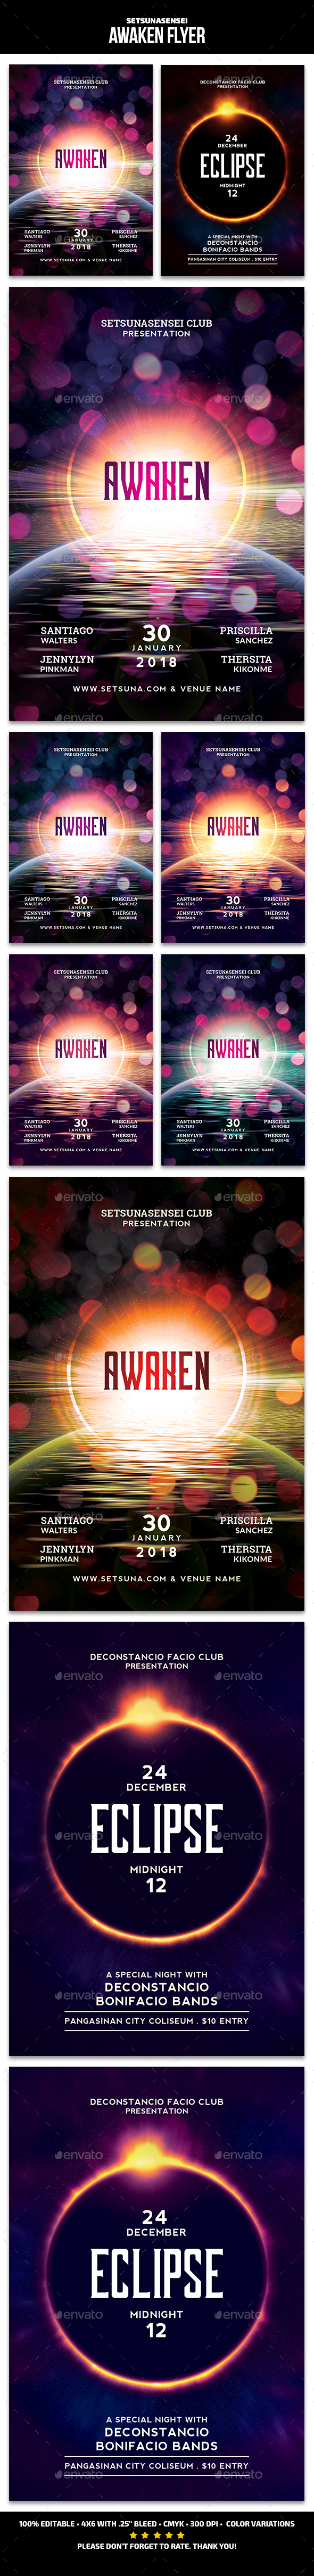 Awaken and Eclipse Flyer - Events Flyers